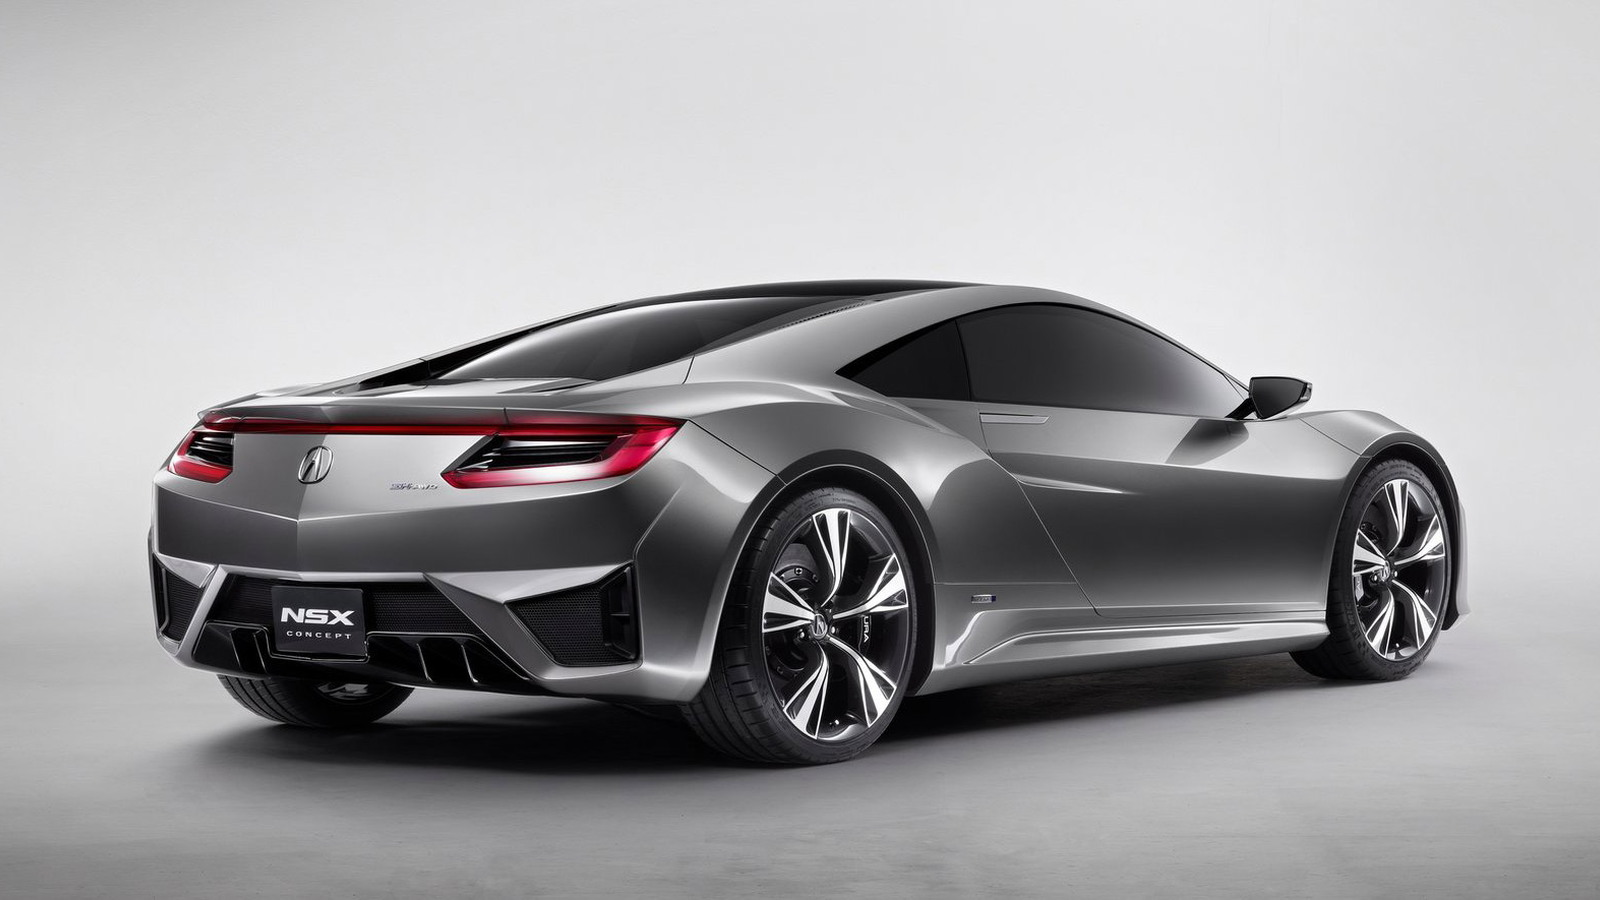 New Acura NSX Coming To Detroit Auto Show: Report